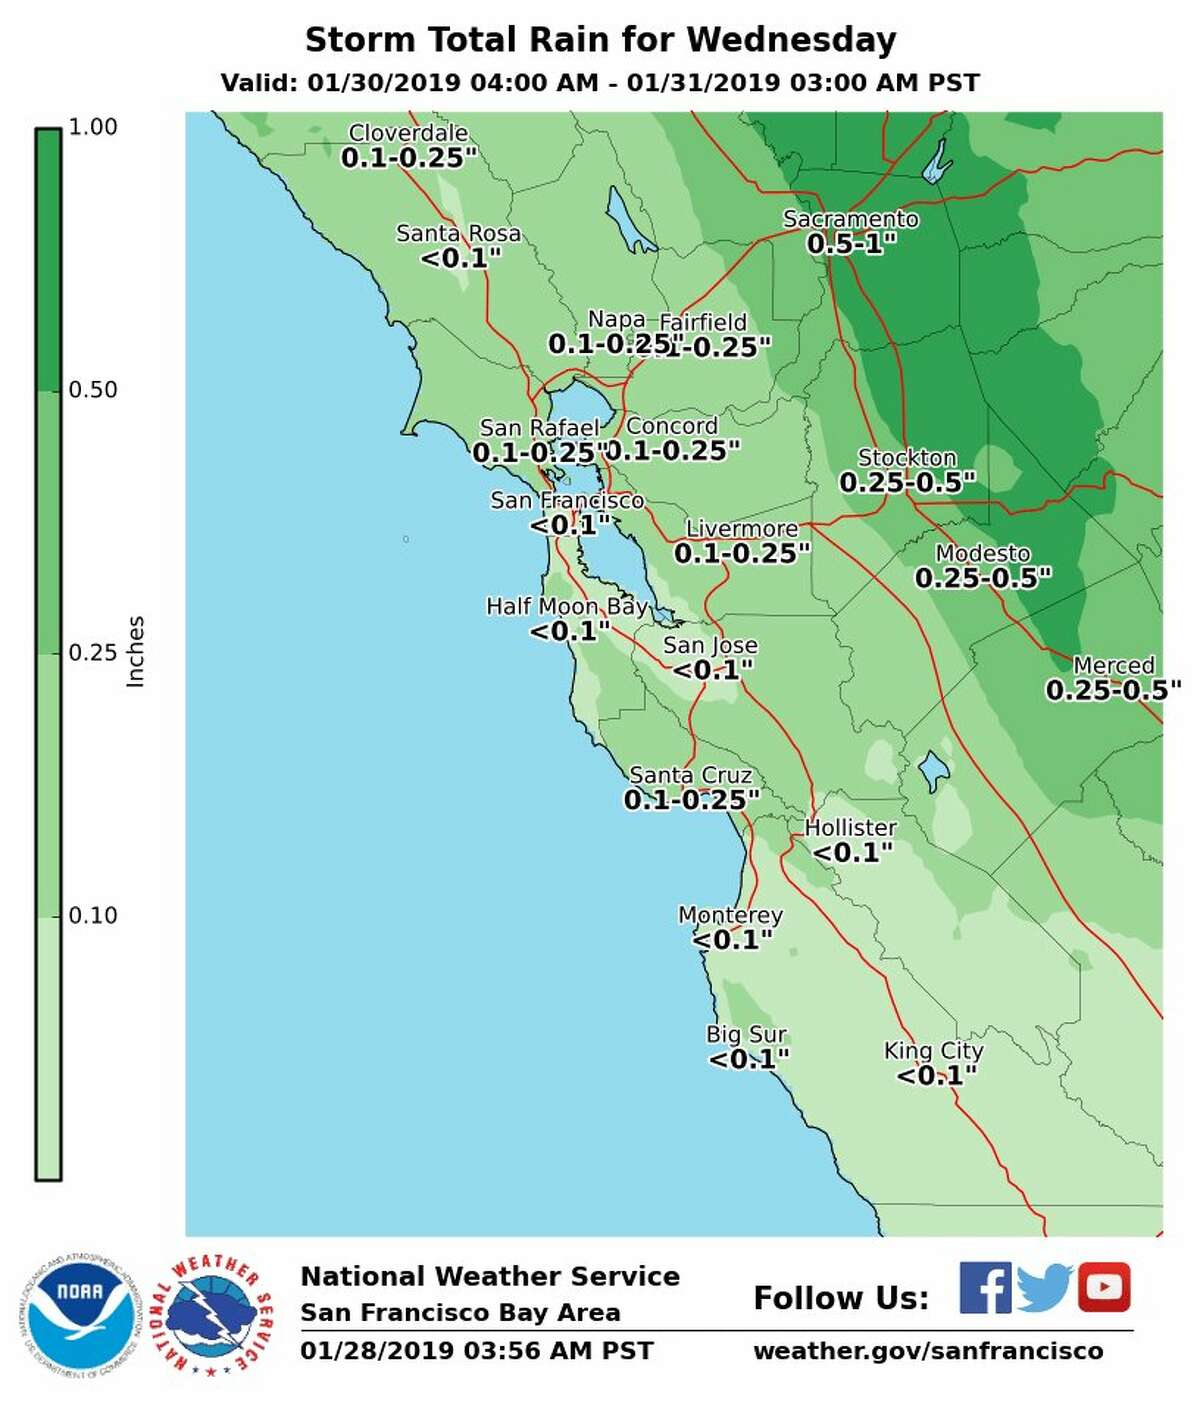 National Weather Service forecast: storm total rain for Jan. 30, 2019